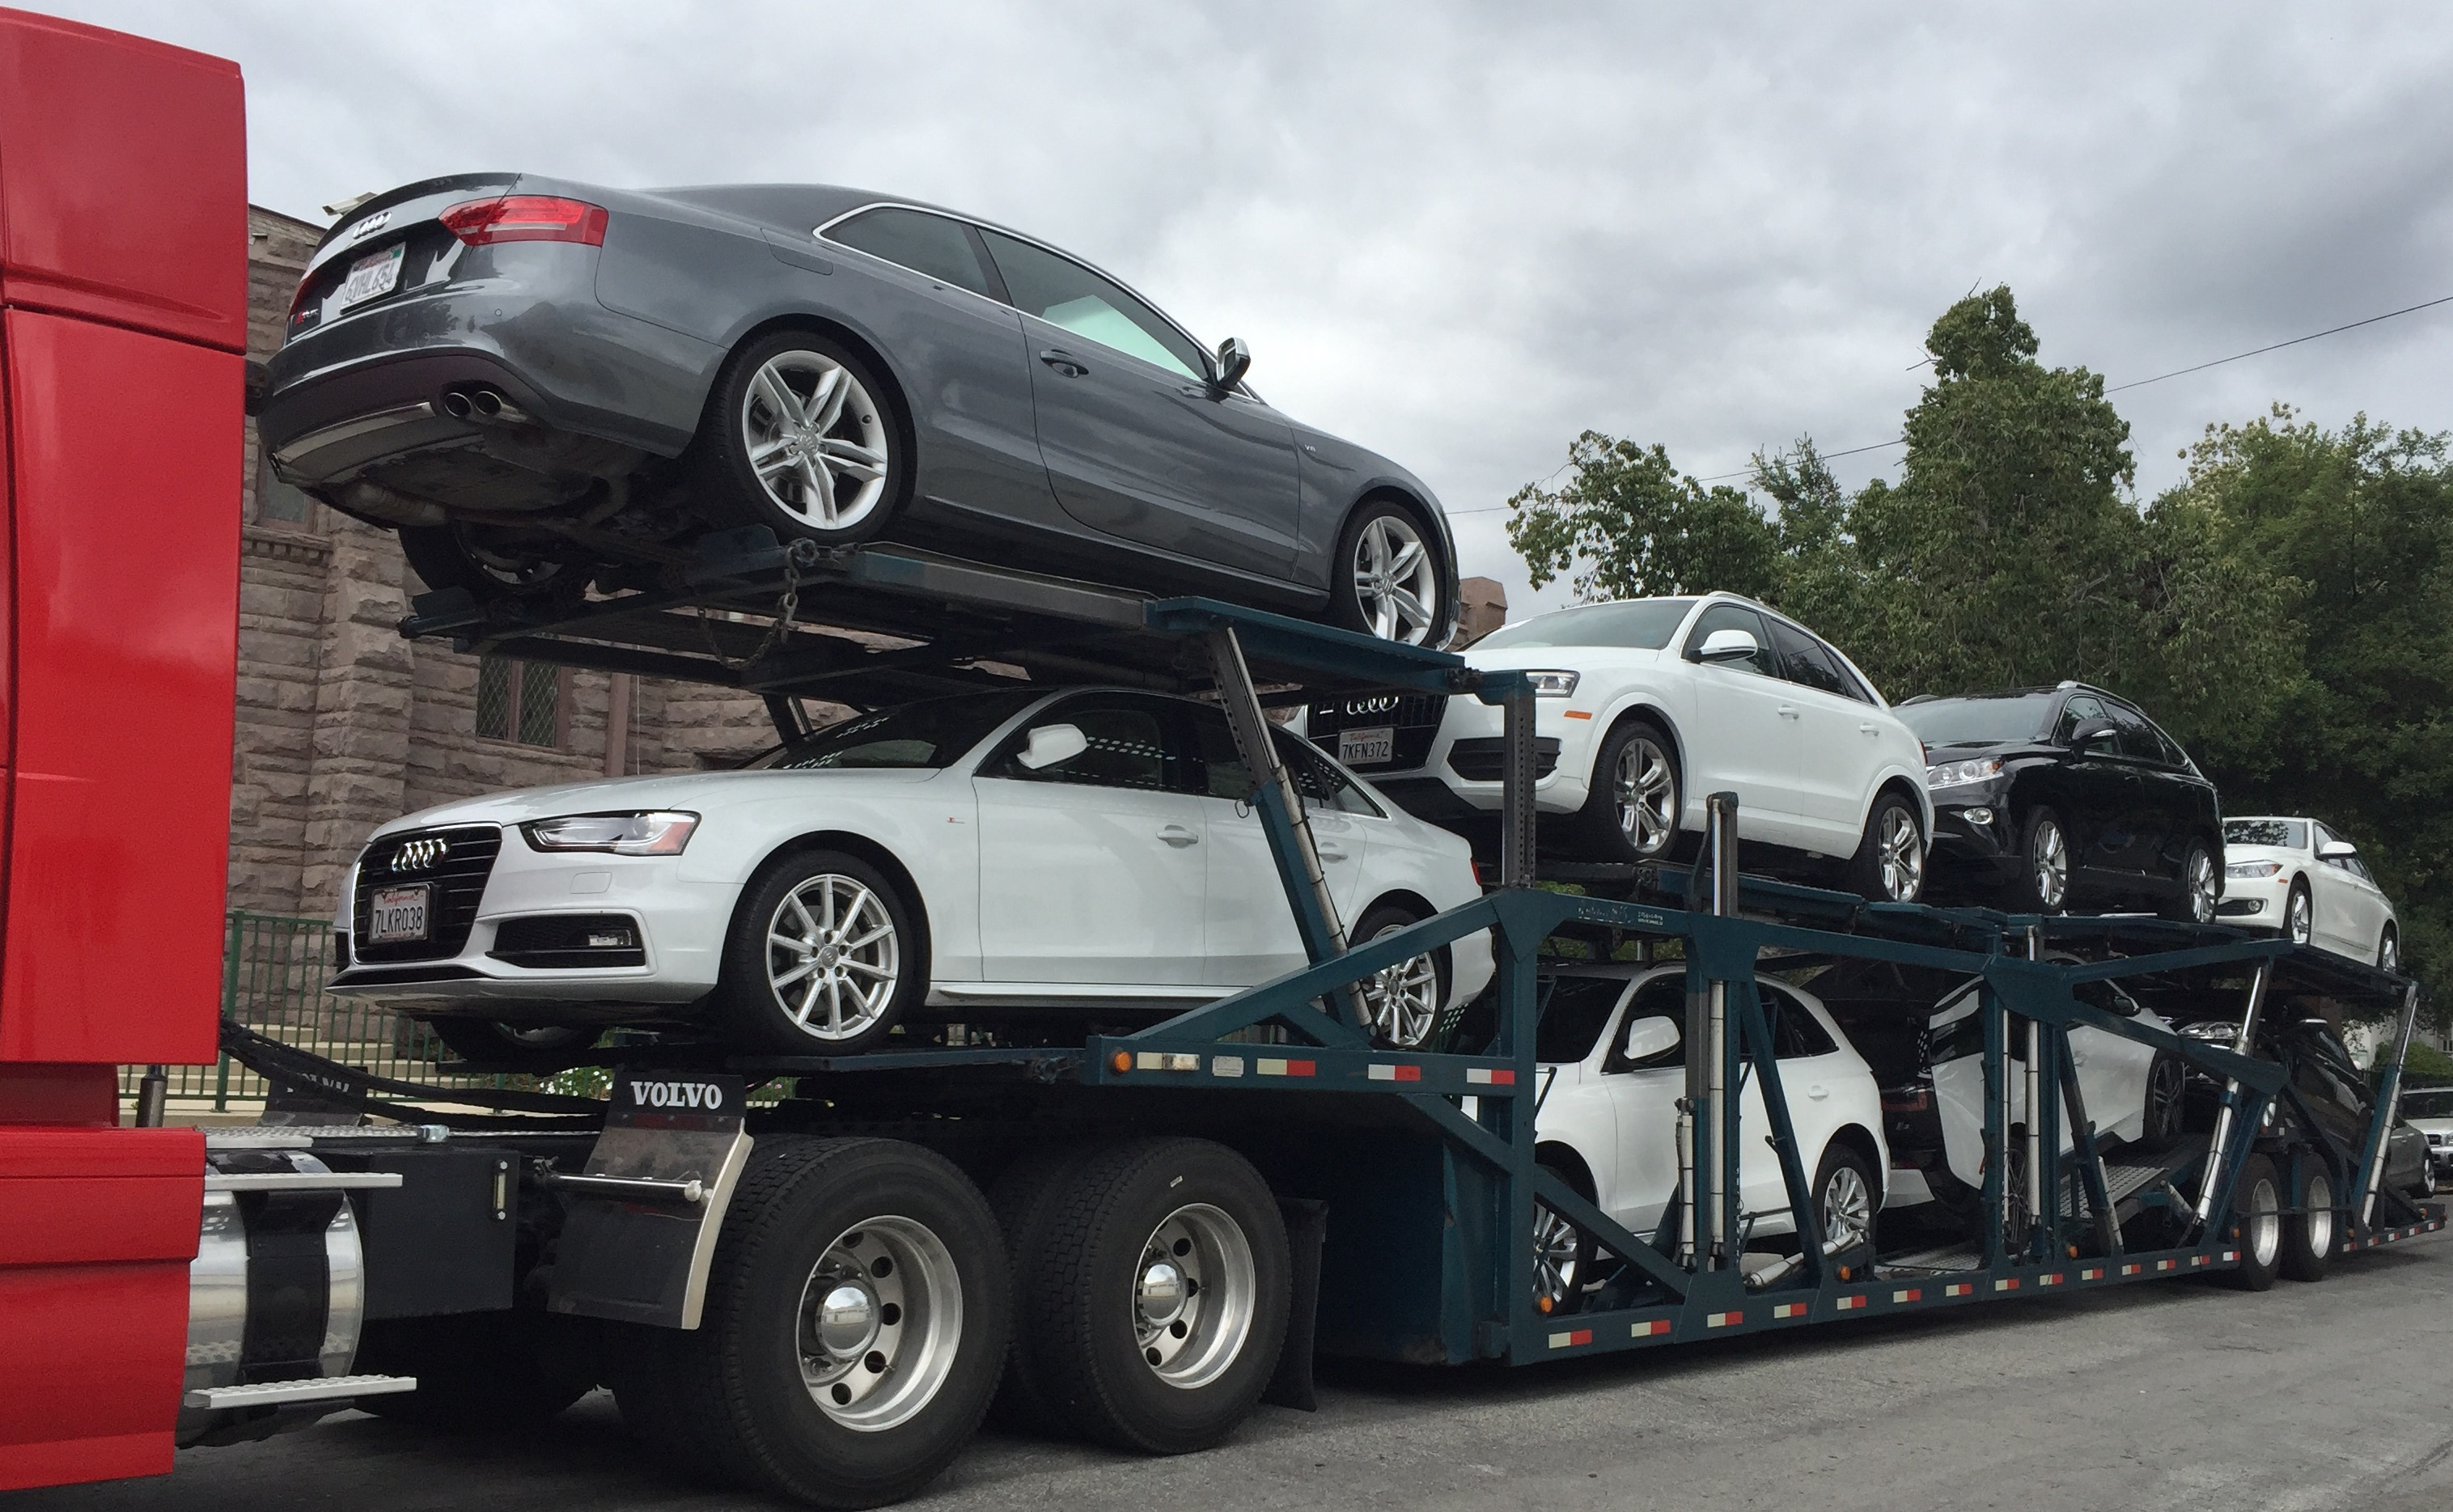 Open Transport Car Shipping Atlanta Car Transport 404 800 6200